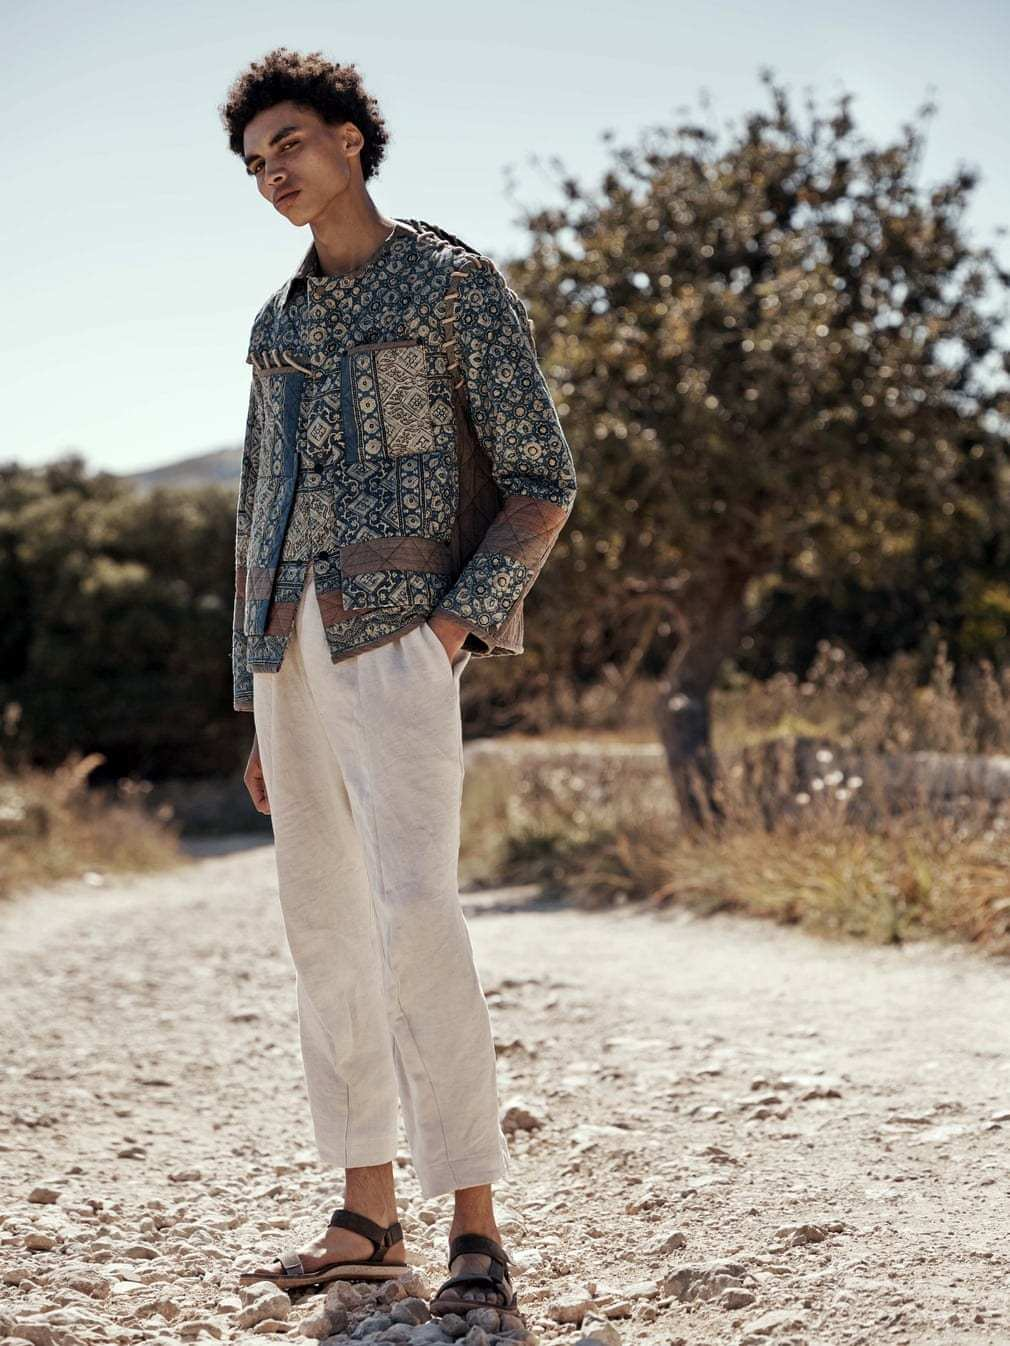 A-comfortable-bohemian-shirt-for-men-with-printed-pattern-for-your-to-look-cute